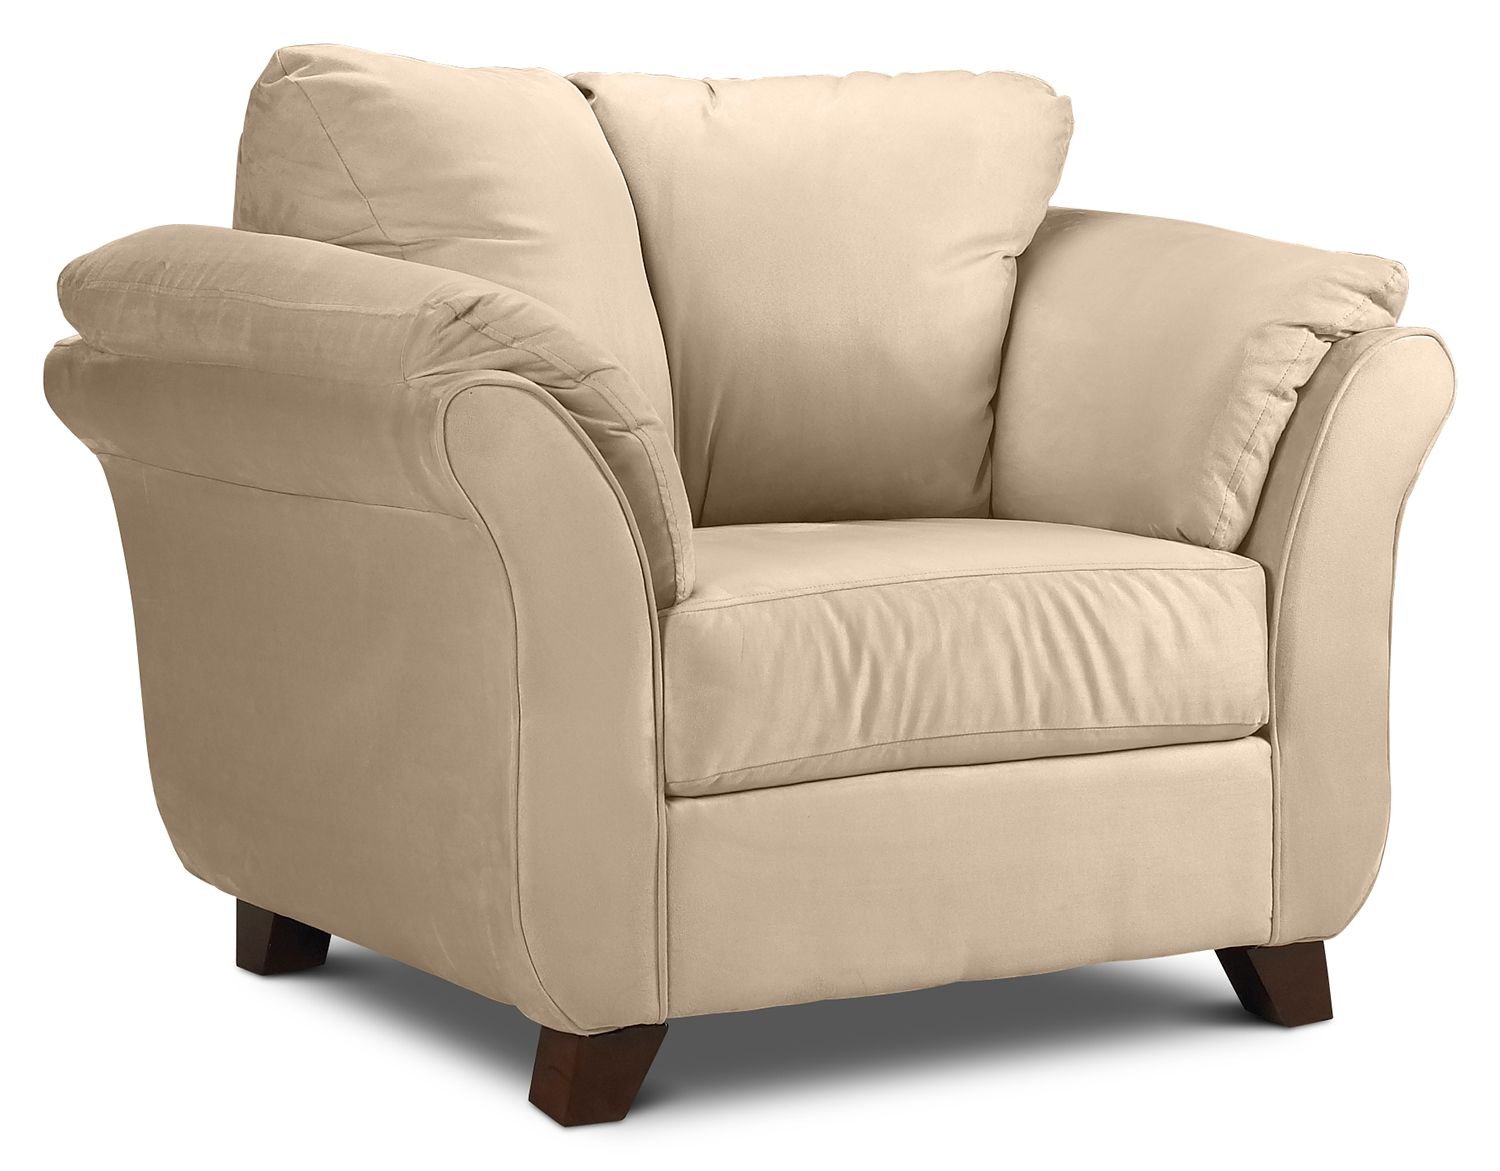 Living Room Furniture Collier Chair Furniture, Living